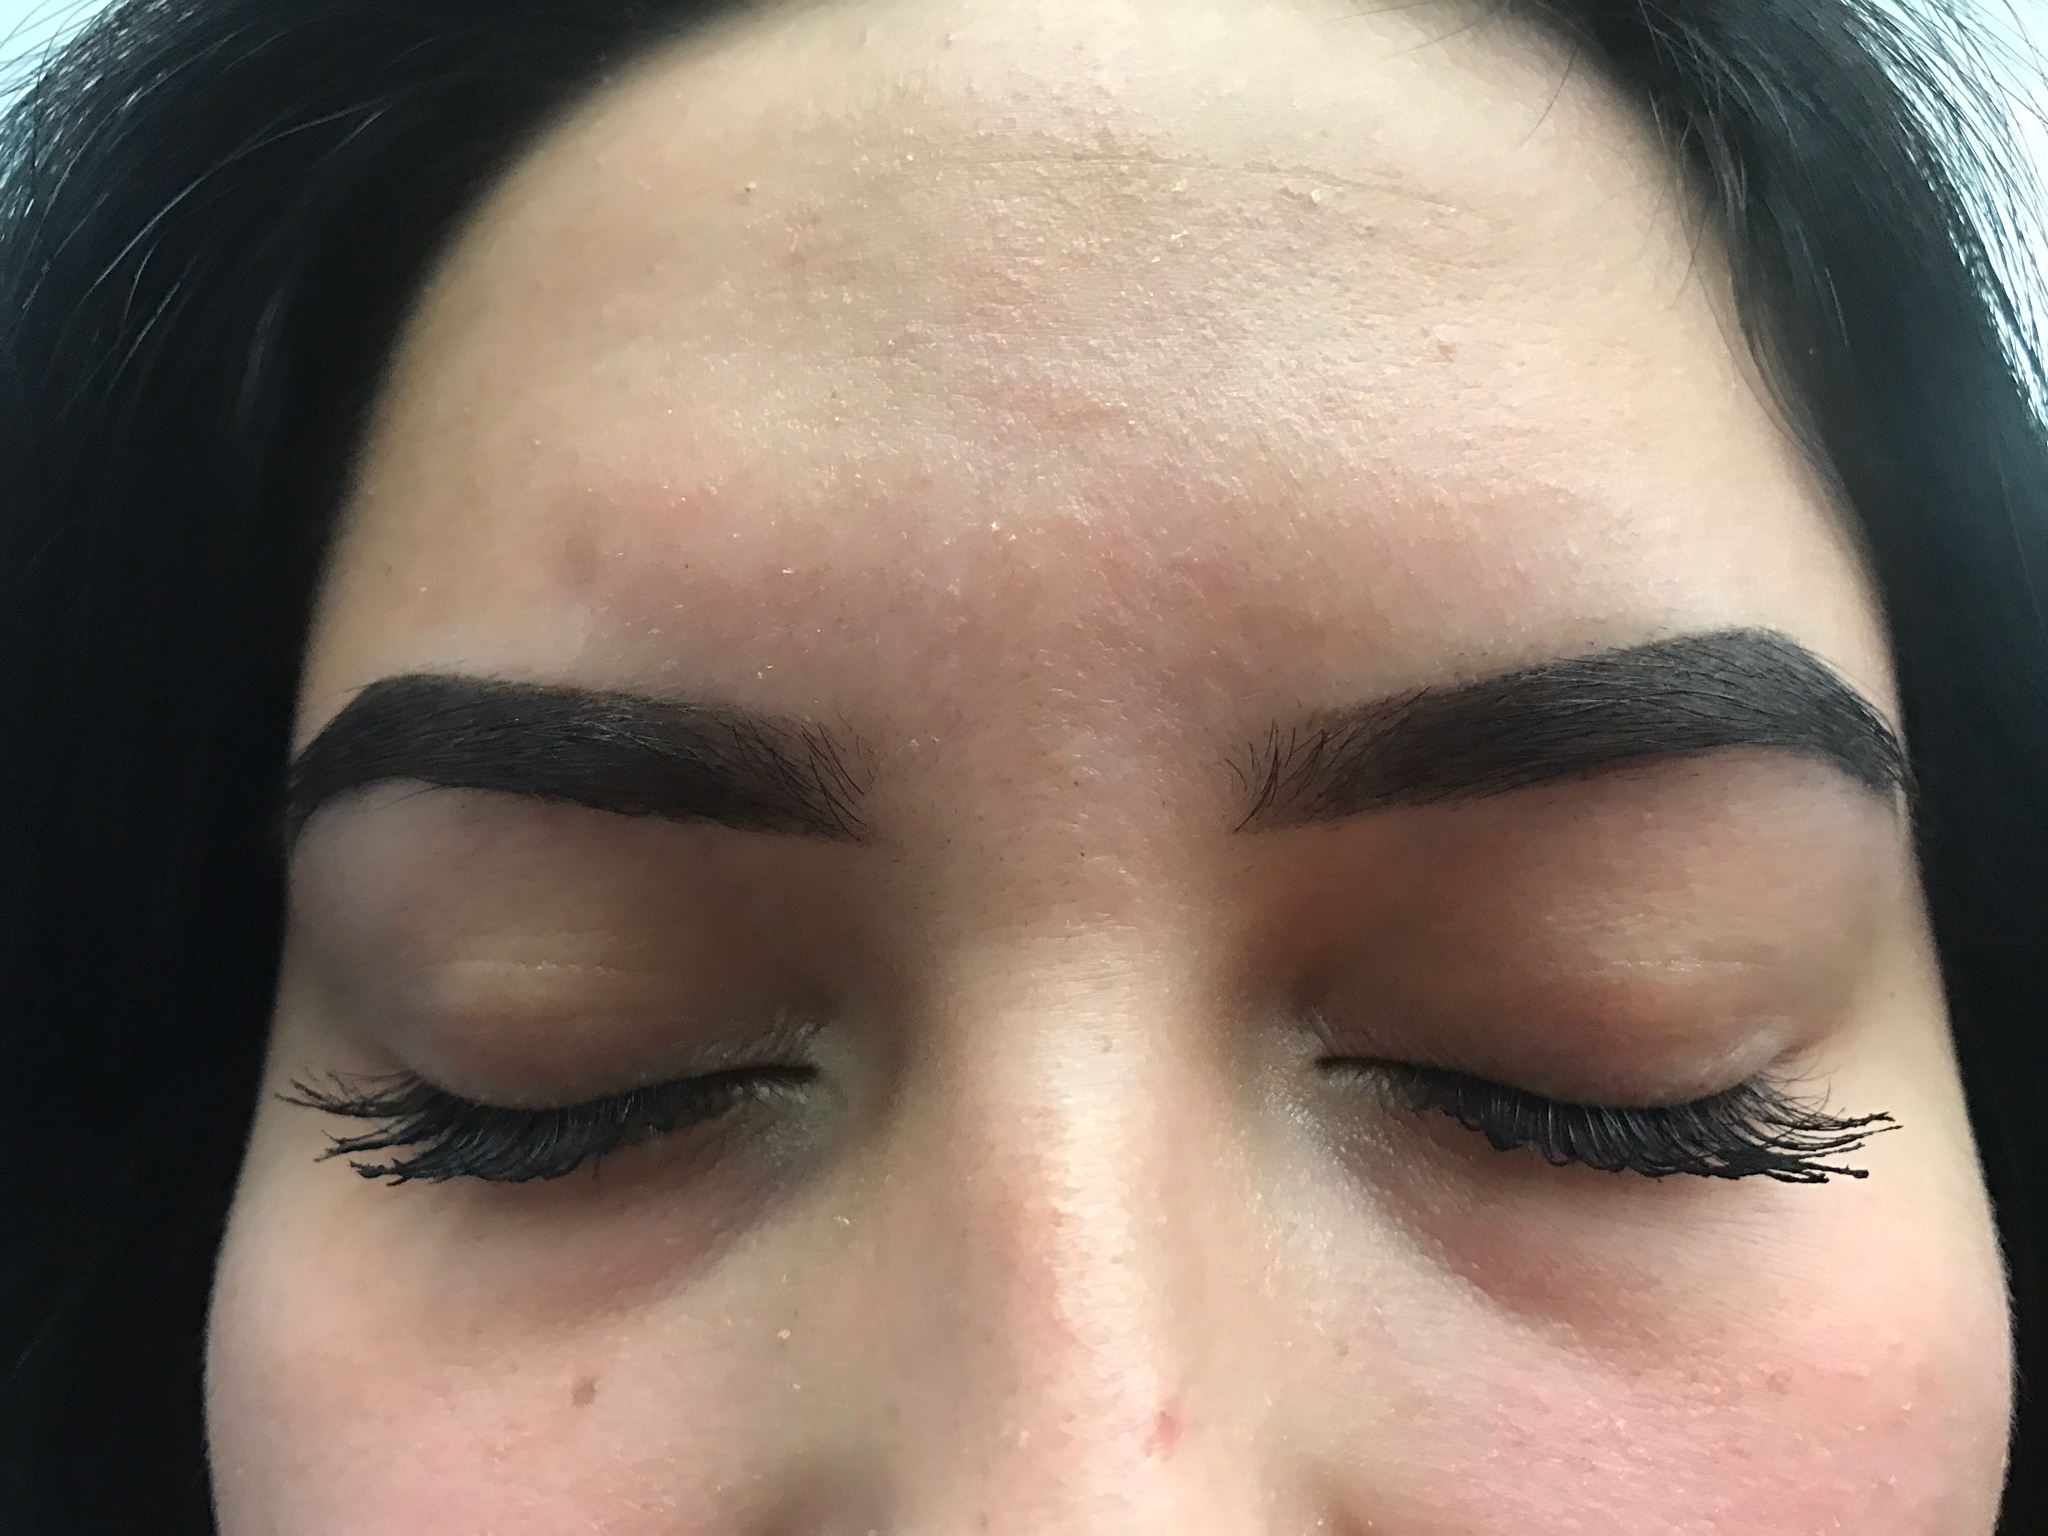 The Brow Effect Hs Insider